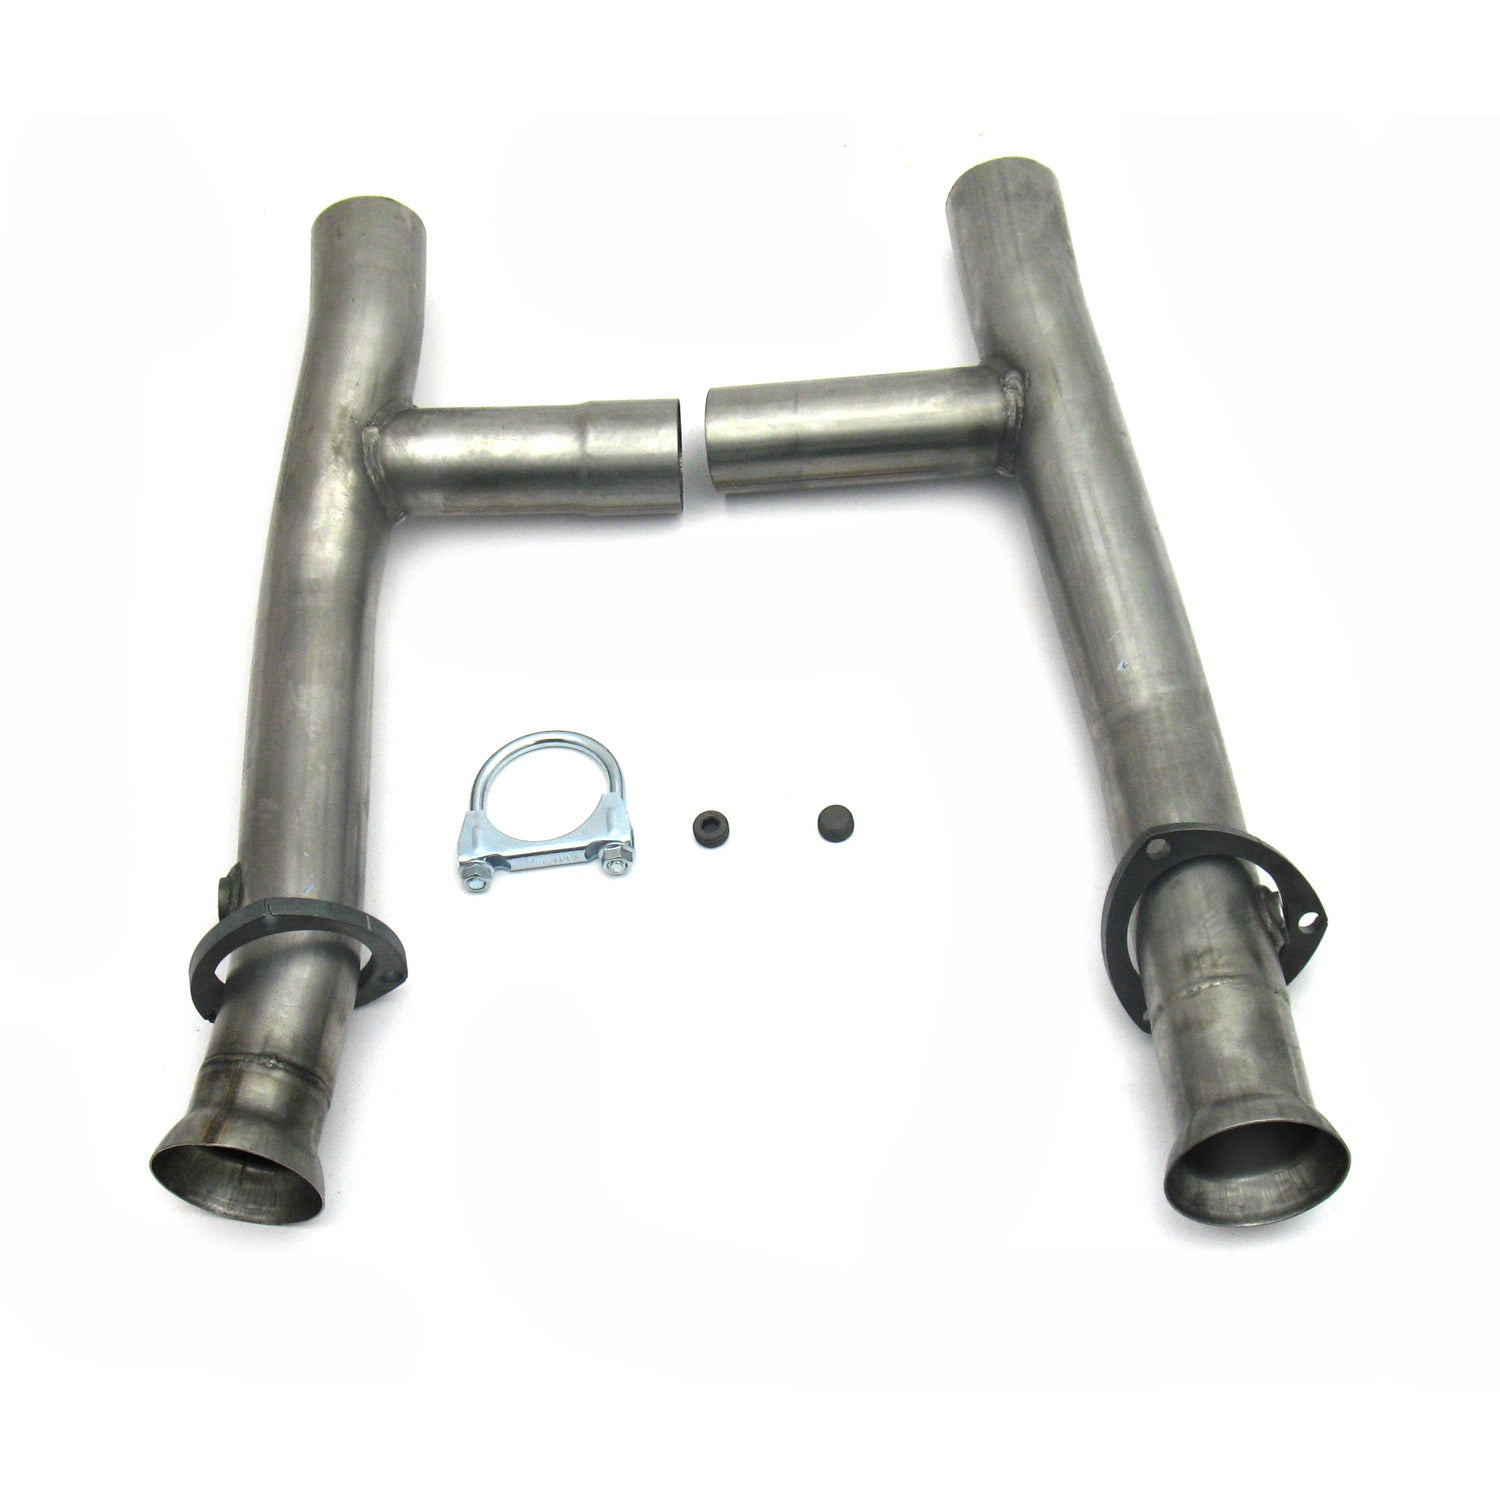 "JBA Performance Exhaust 6654SH 2.5"" Stainless Steel Mid-Pipe H-Pipe for 6654, 390/427"